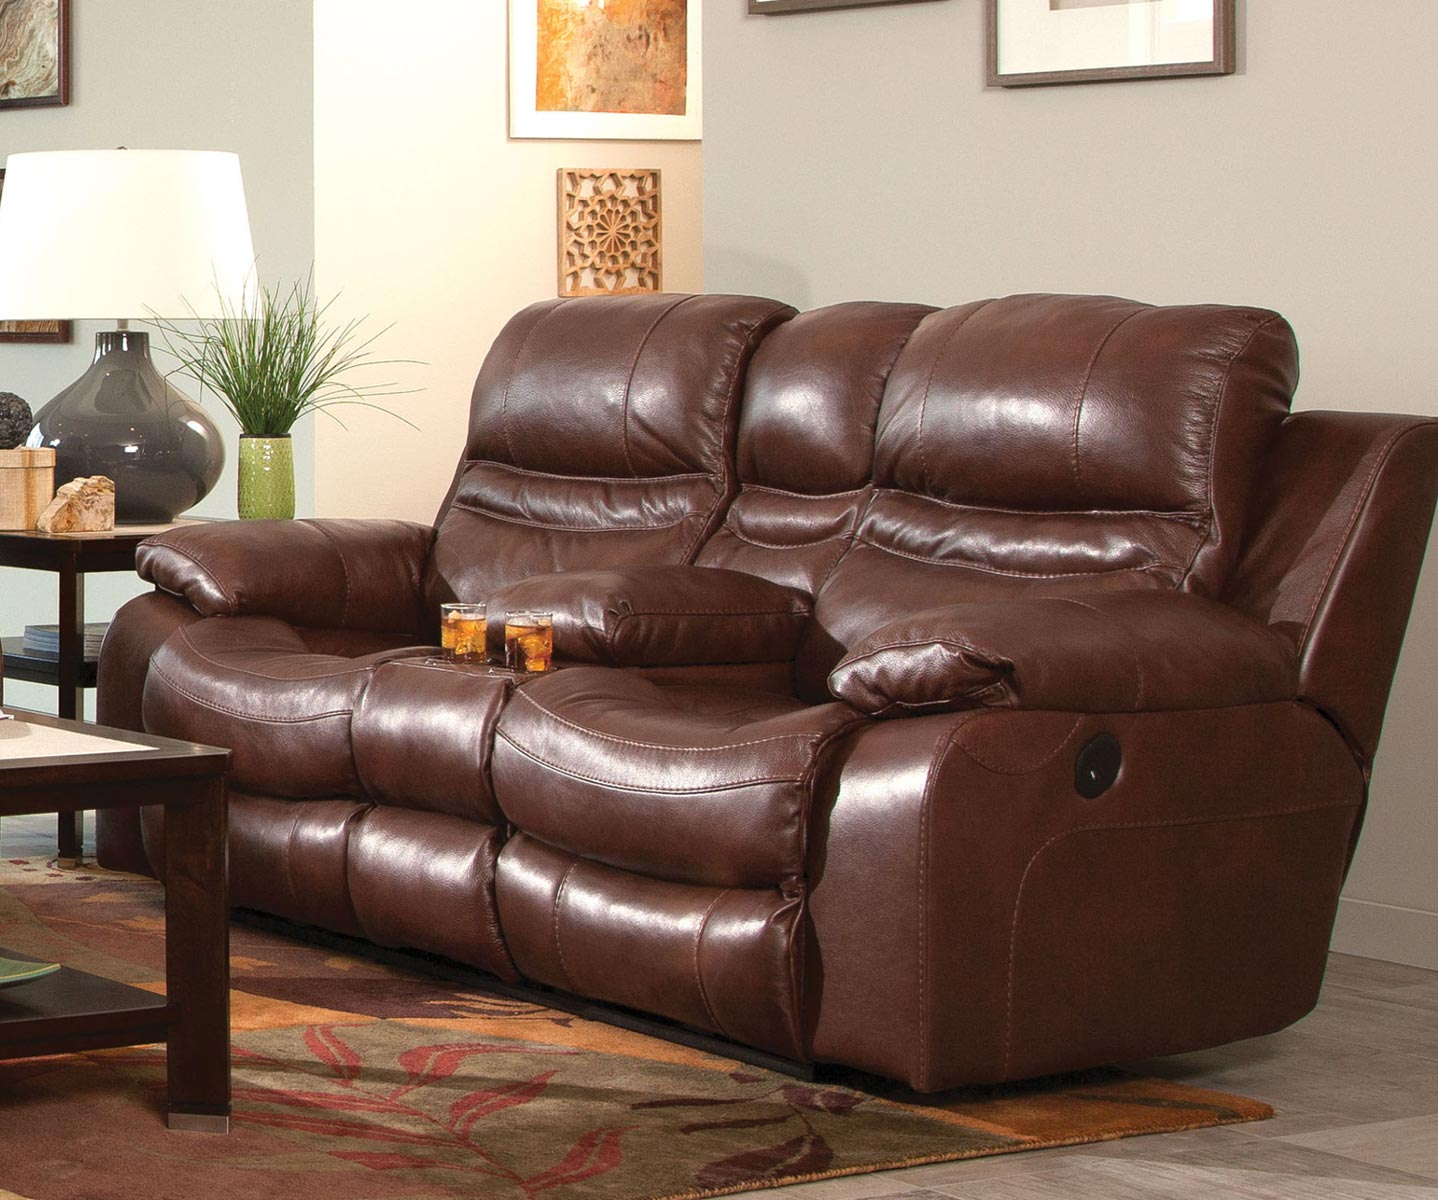 CatNapper Patton Top Grain Italian Leather Lay Flat Power Reclining Console Loveseat - Walnut : leather loveseat power recliner - islam-shia.org